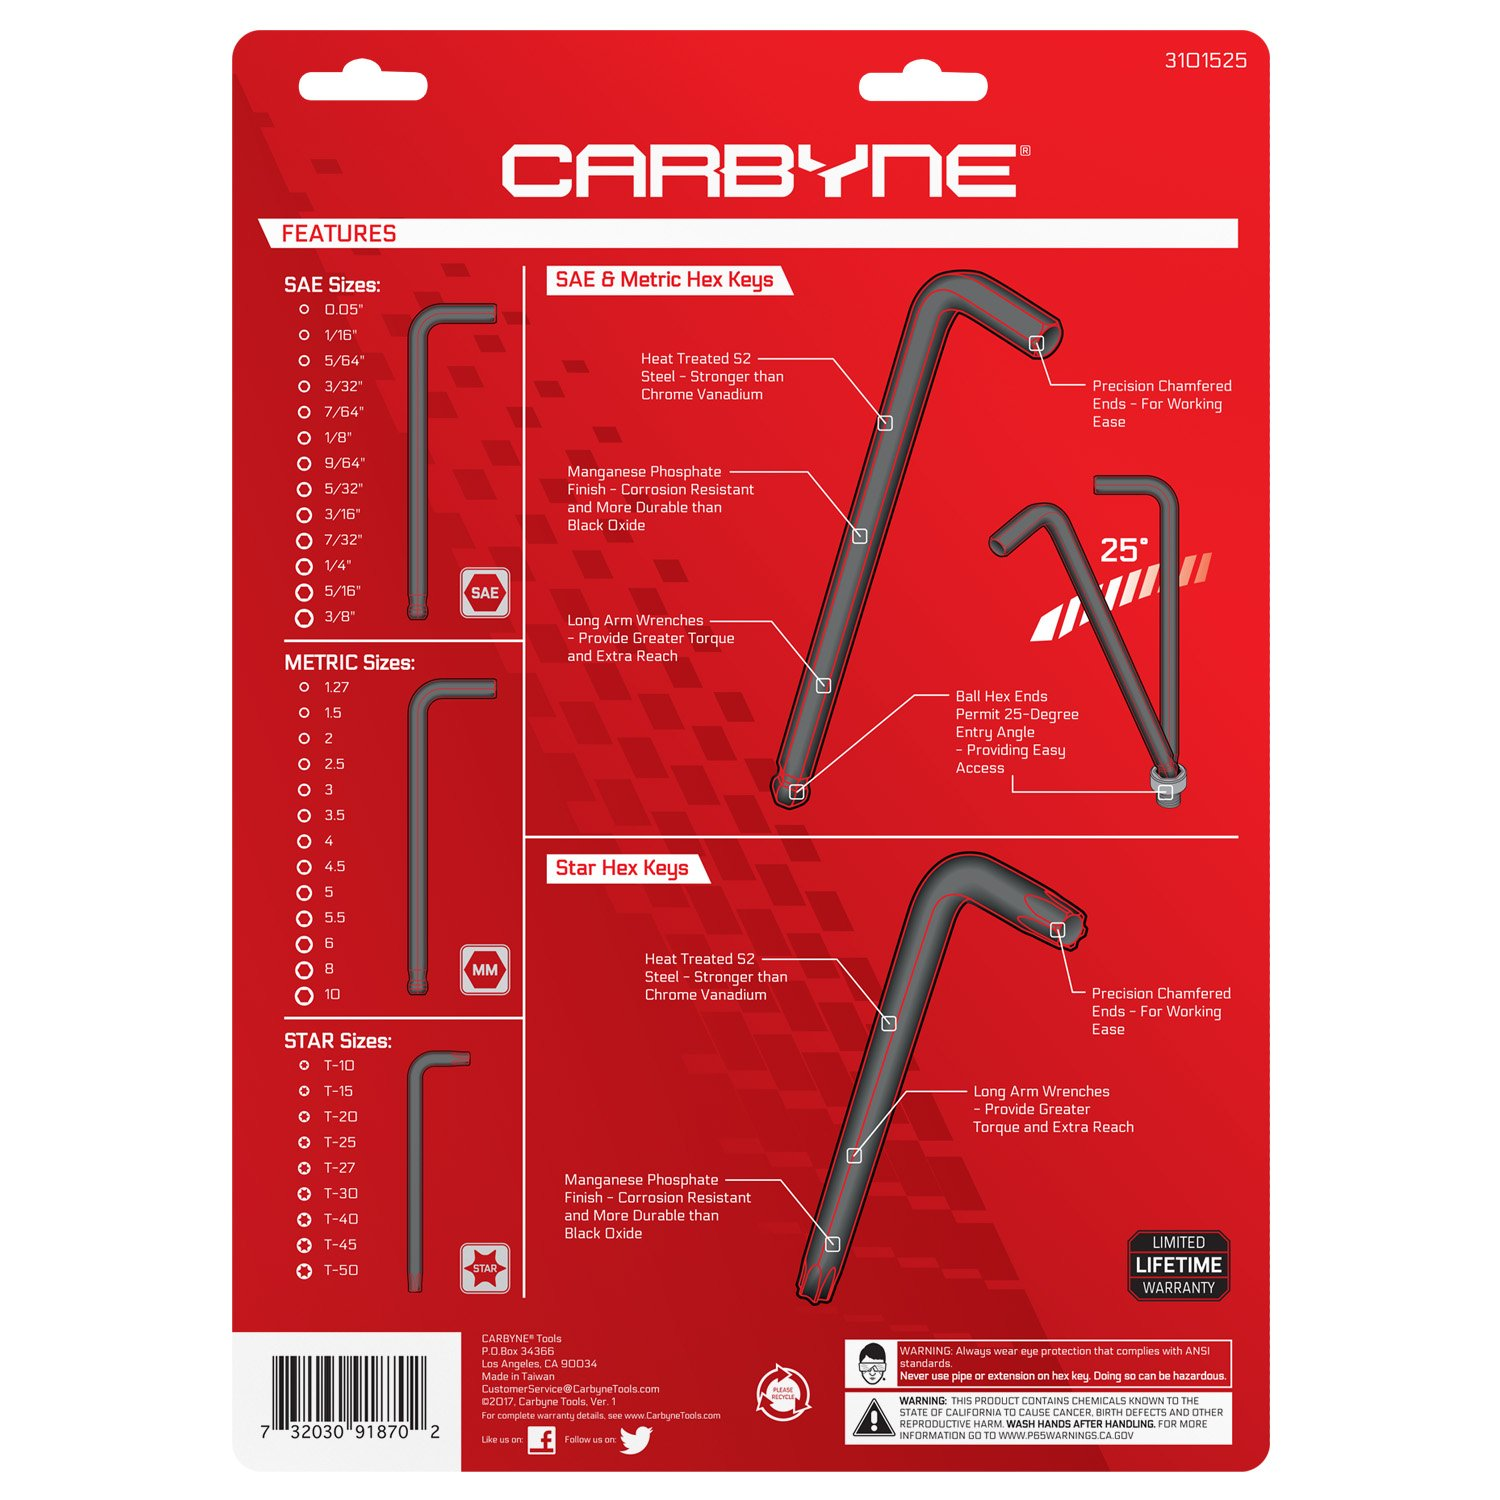 CARBYNE 35 Piece Long Arm Ball End Hex Key Wrench Set, Inch/Metric/Star, S2 Steel by Carbyne (Image #2)